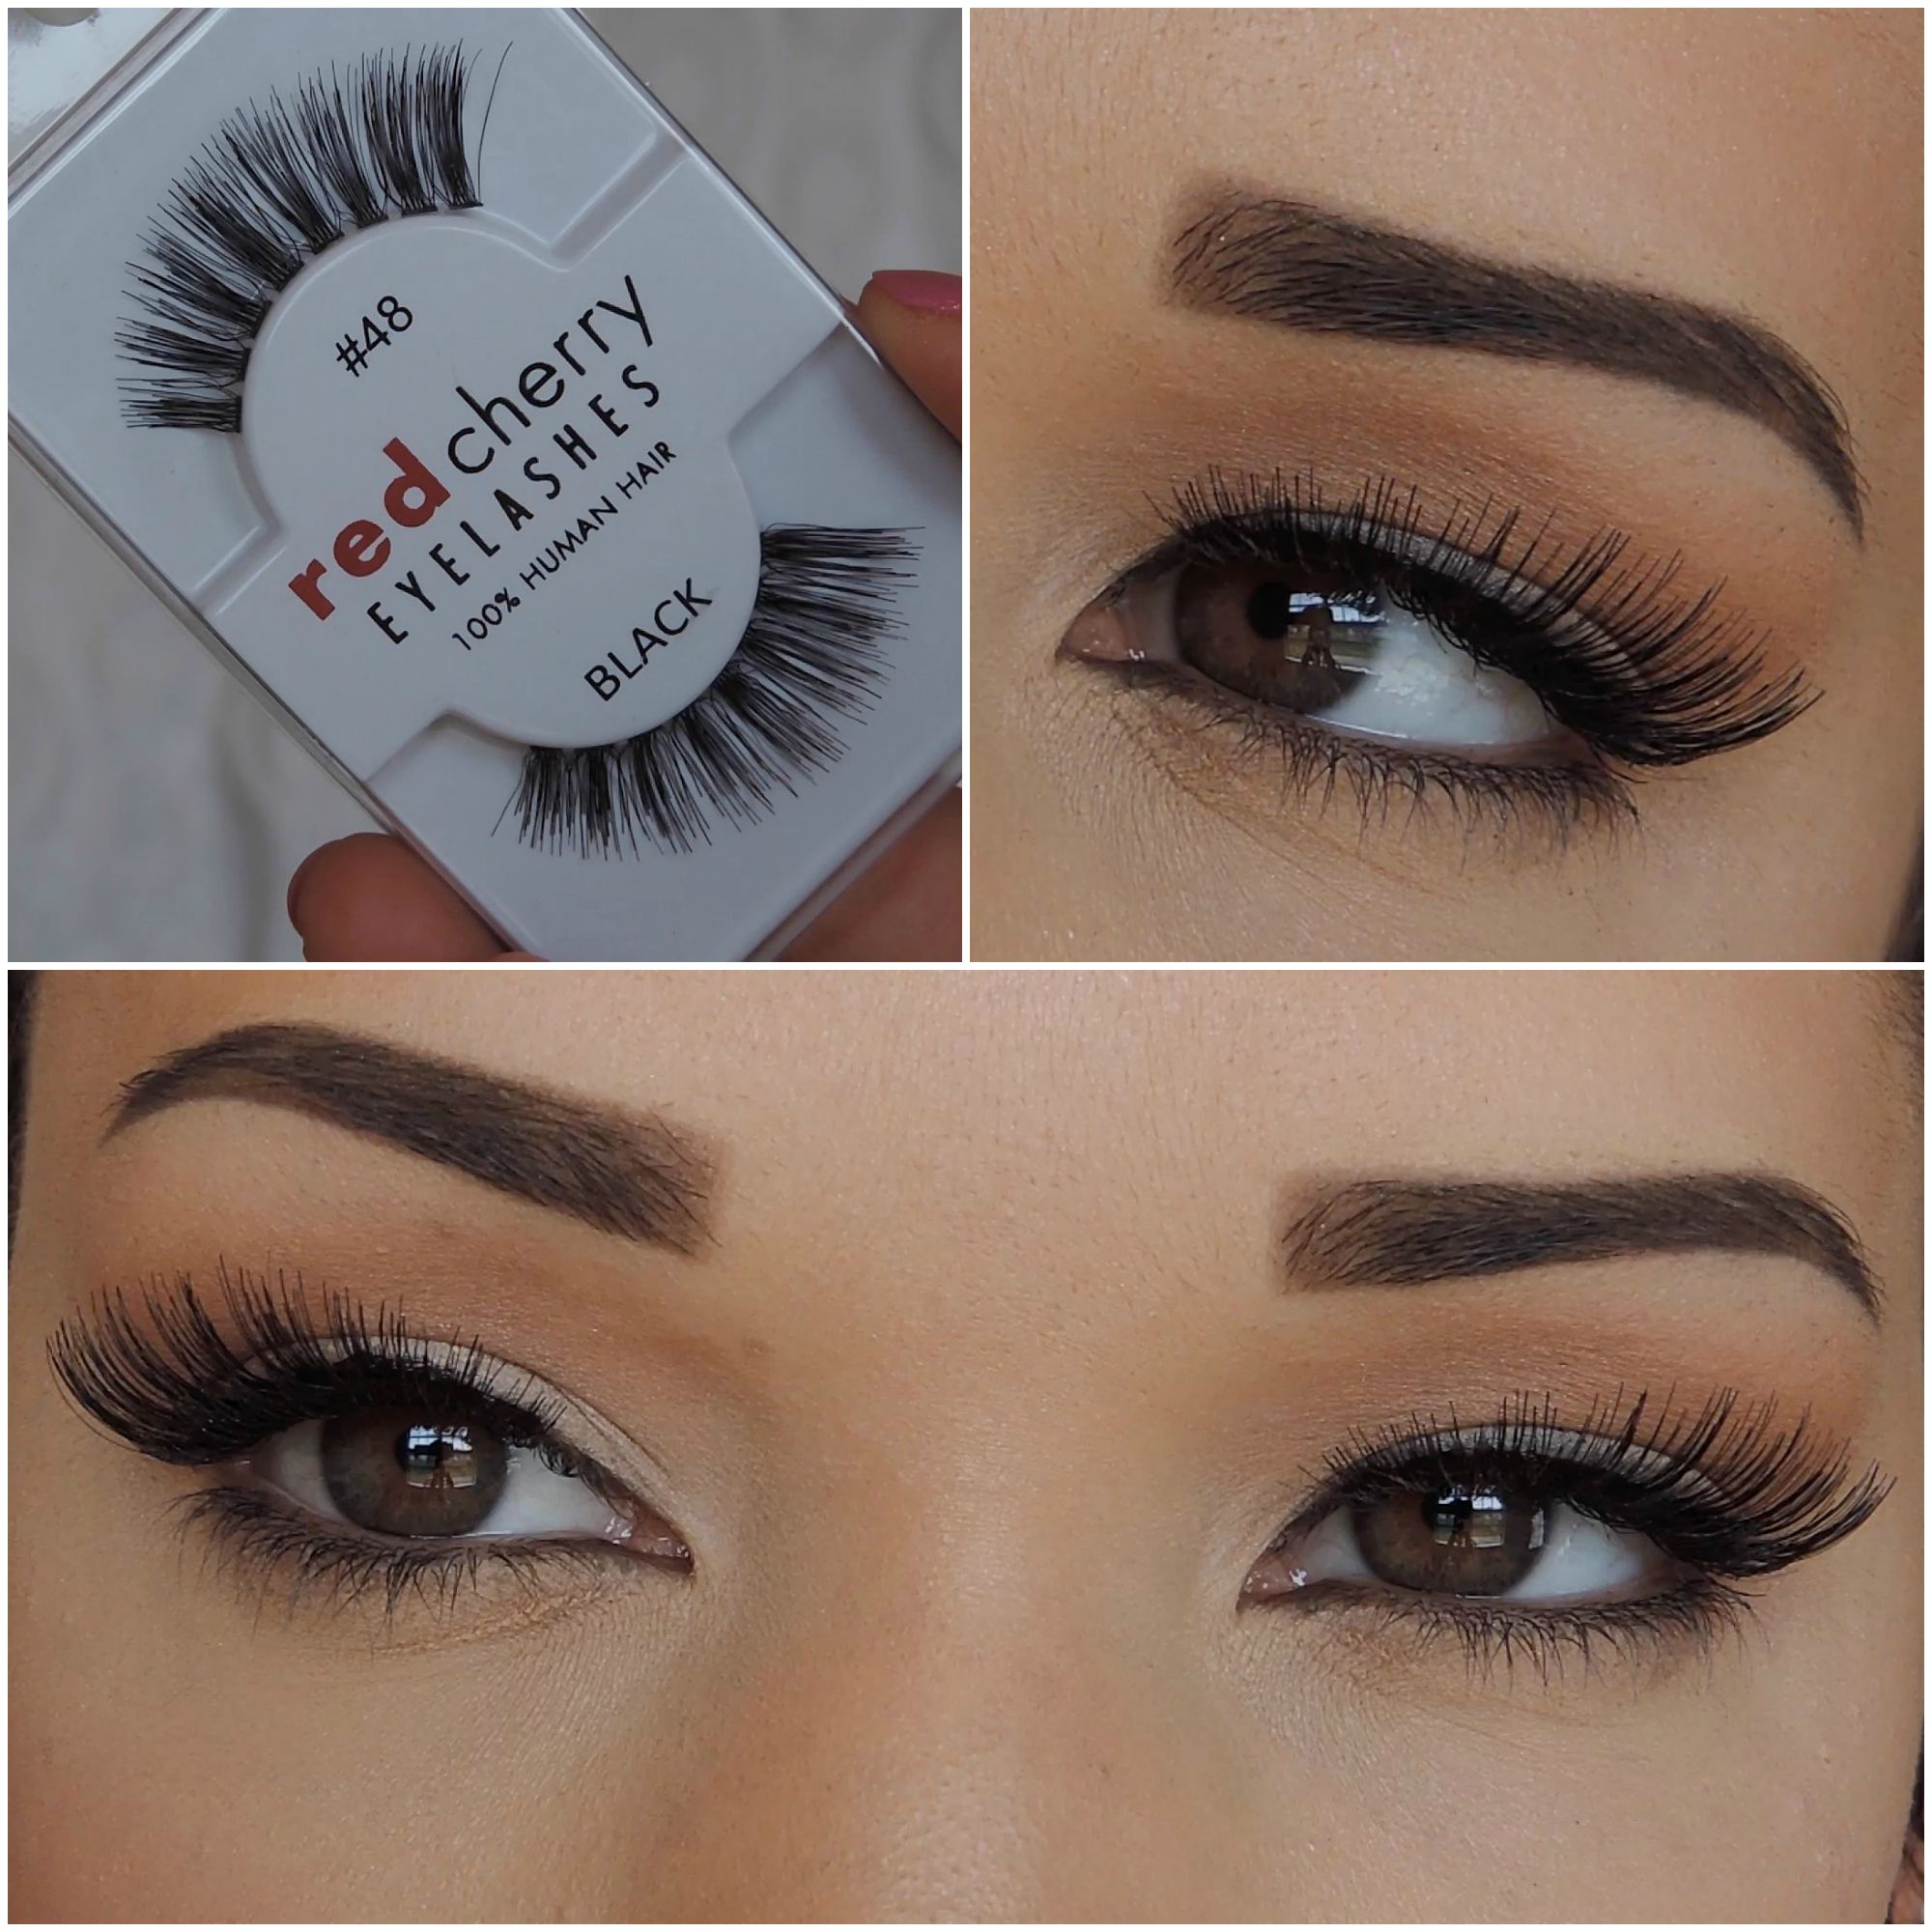 Rote Mascara Red Cherry Lashes 48 Darla Beautybycmw Pinterest